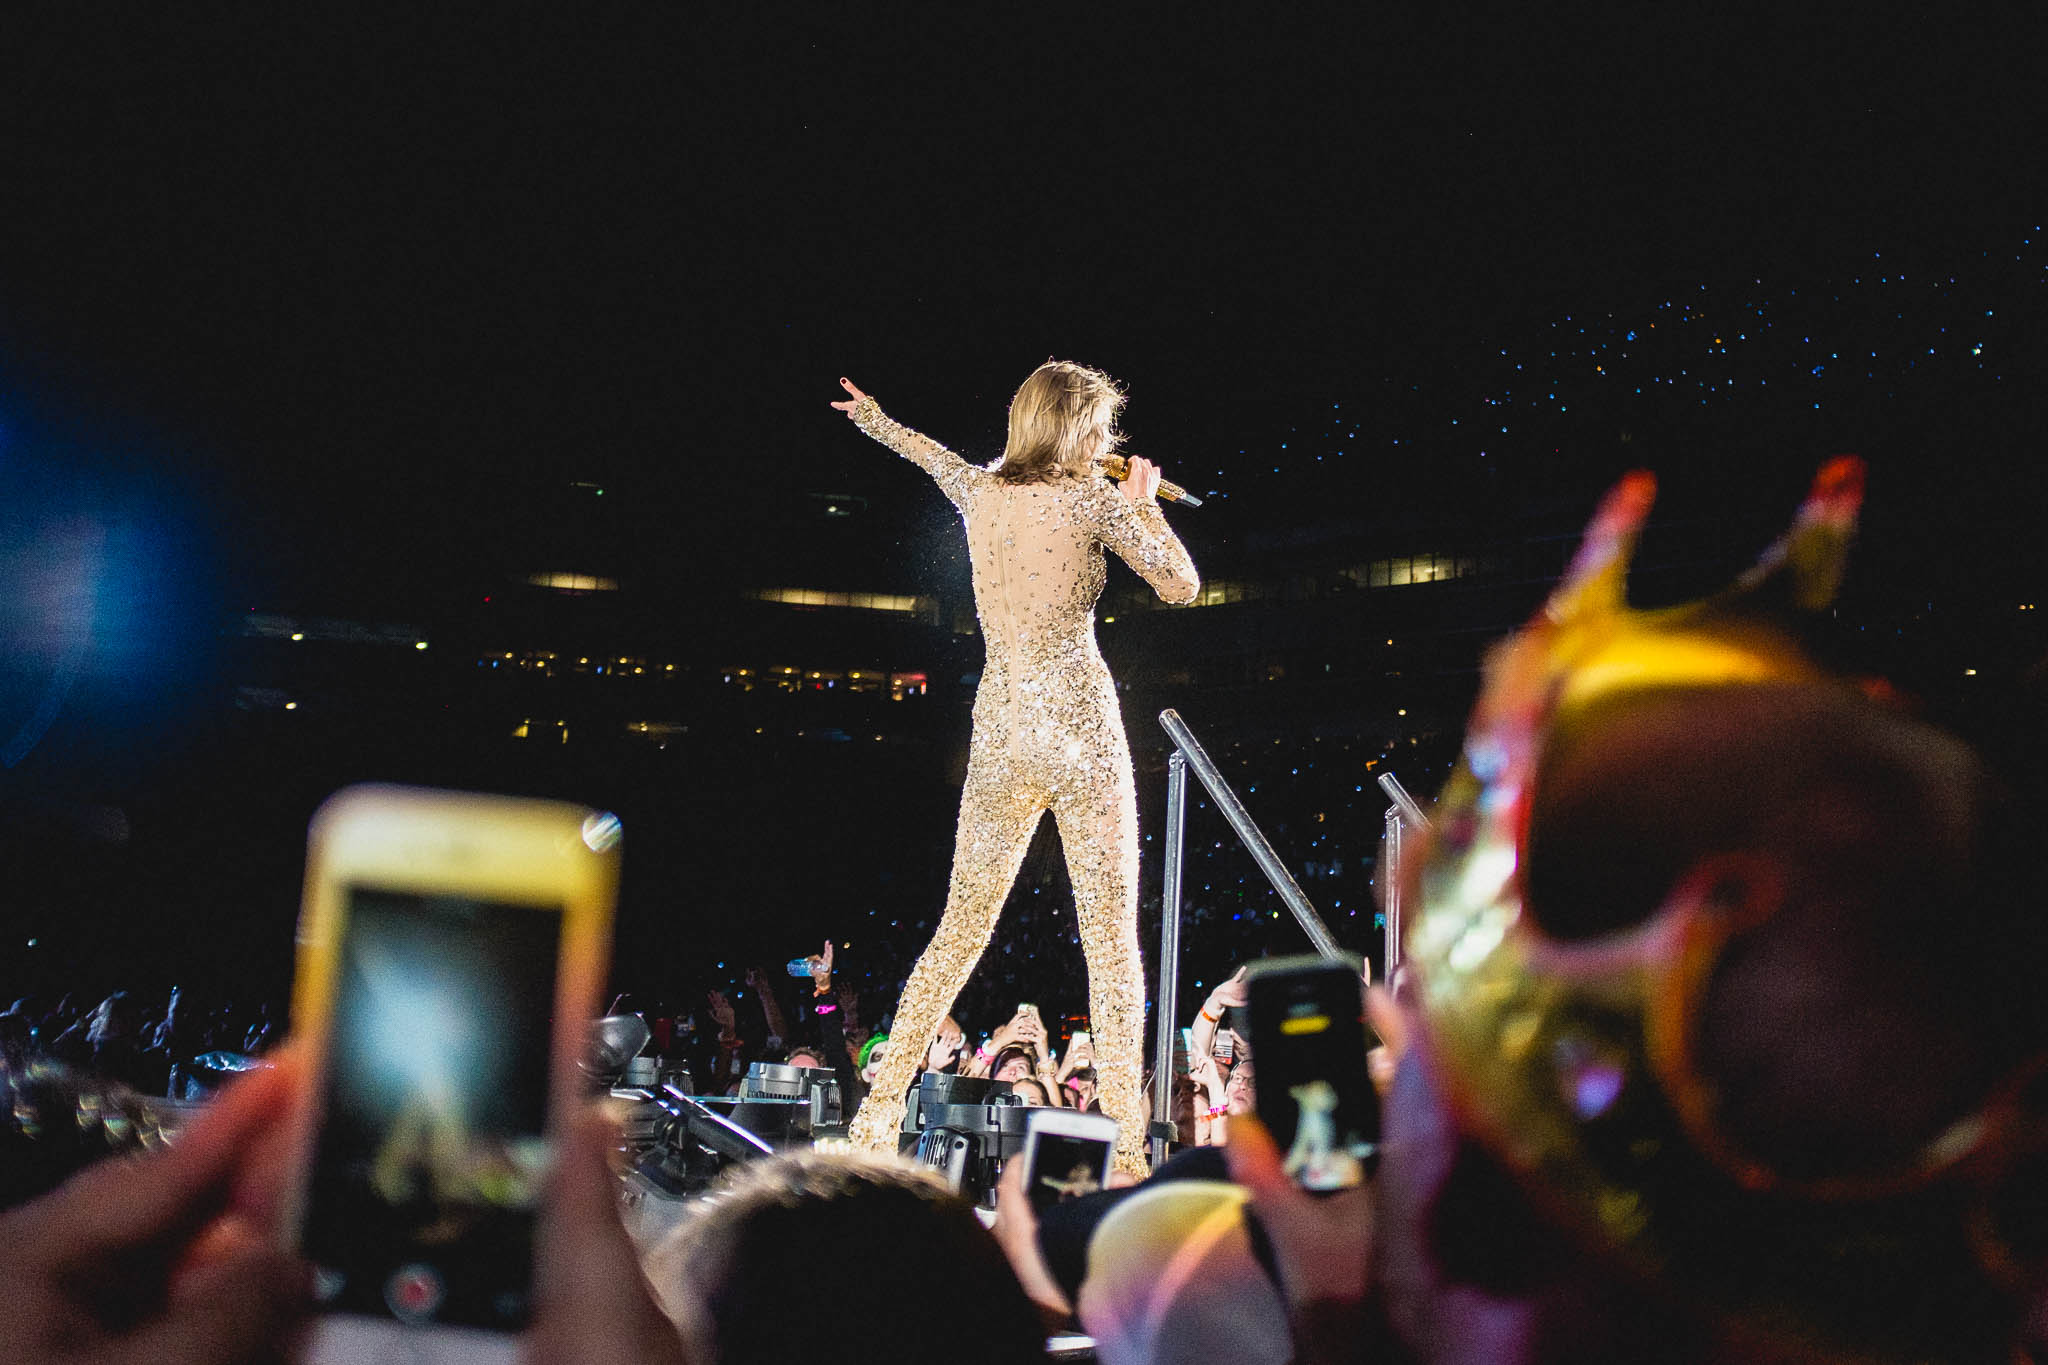 October, 31 2015. Taylor Swift performs in Tampa, FL for the last stop on the US leg of her 1989 Tour.